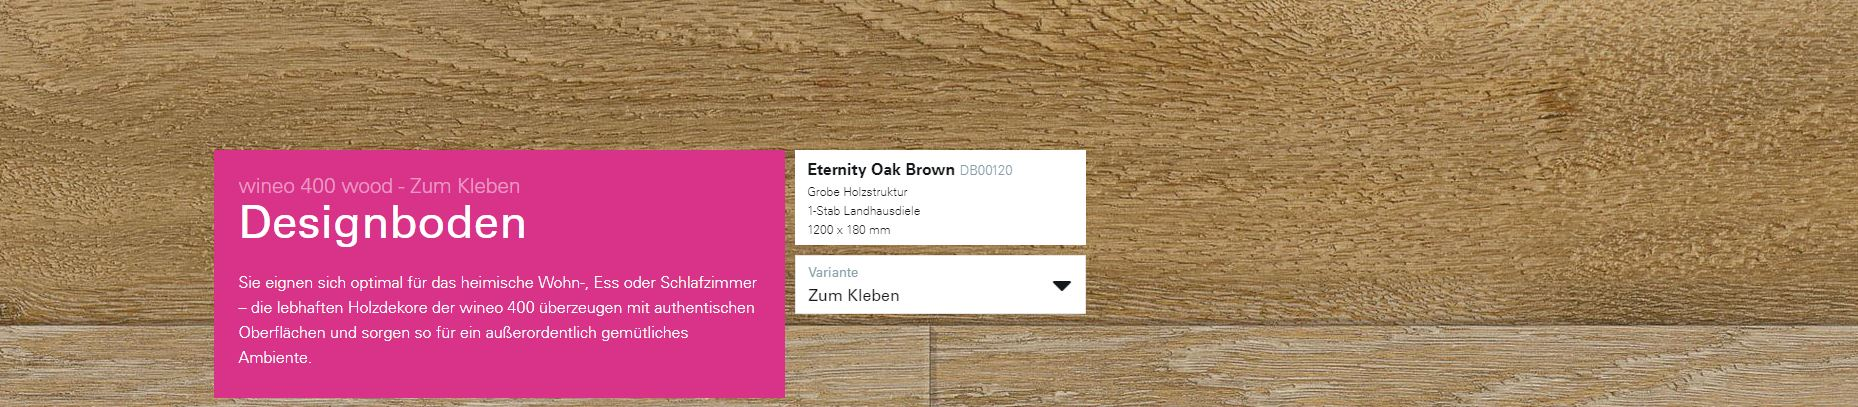 Wineo 400 Eternity Oak Brown DB00120 @ Boden4You.com Design Bodenbelag günstig und Trsuted Shop sicher kaufen